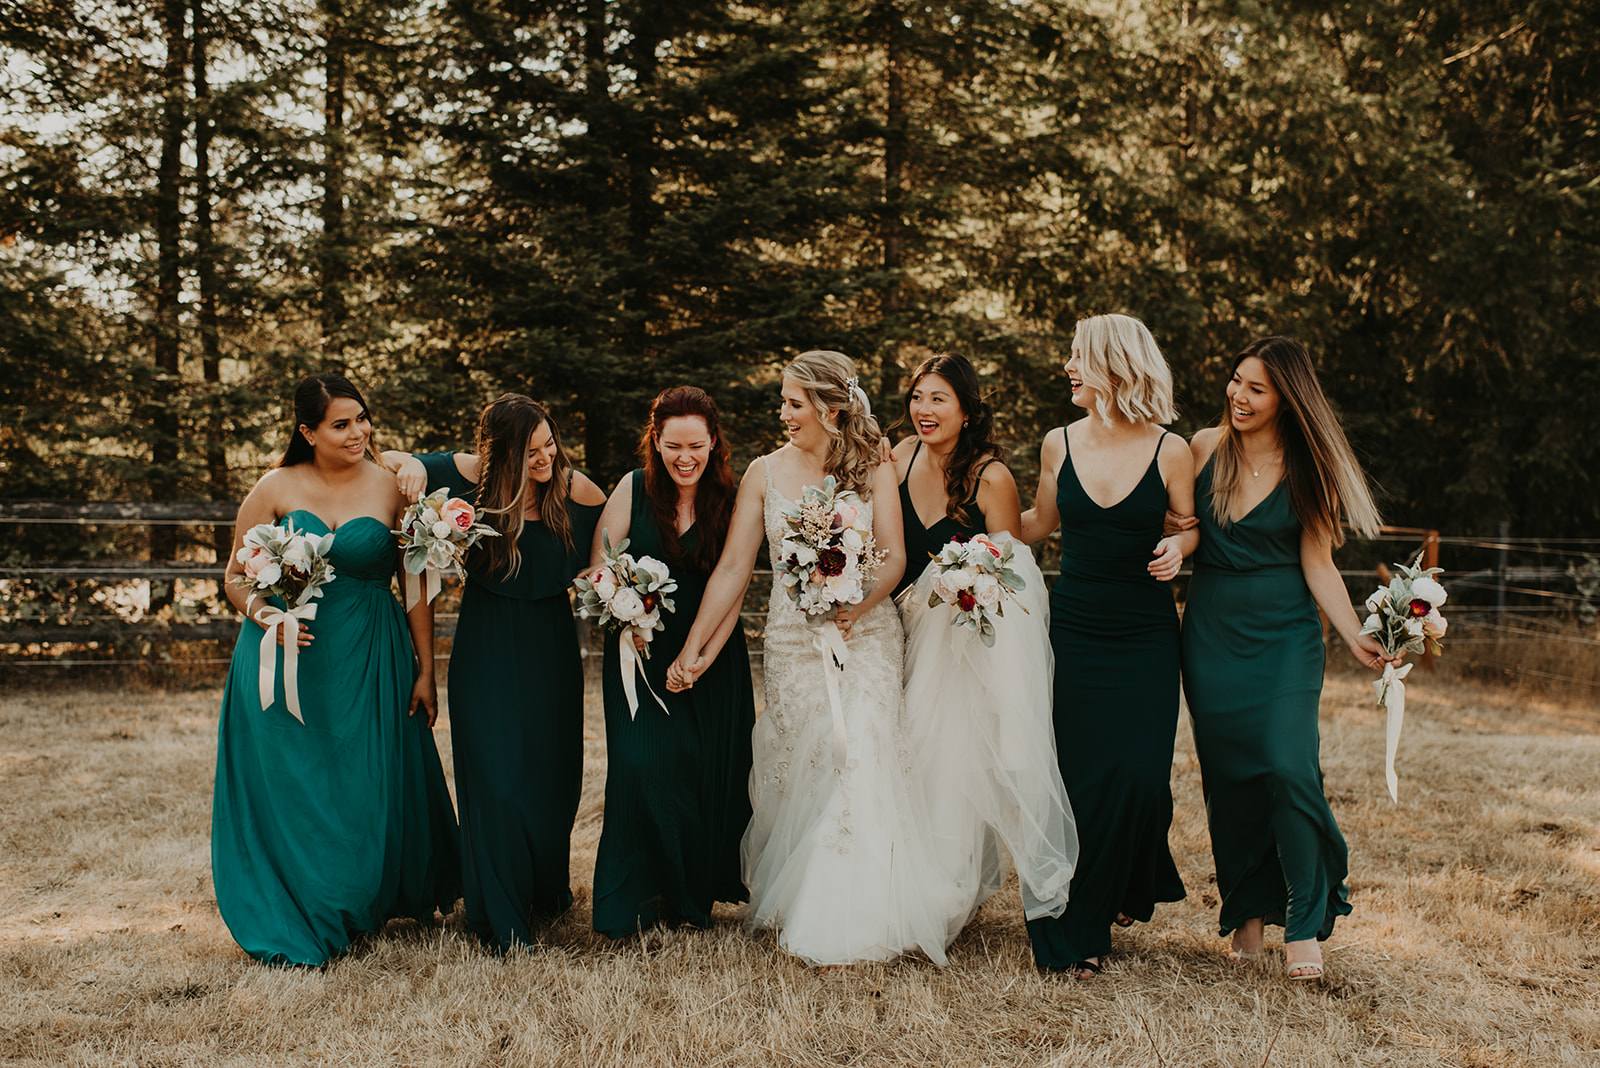 The Homie Hook-up / $3500 - Do you have some of your wedding day decided but need help in other areas? We provide the expertise behind your design plan, timeline, and support up to 3 vendor selections. Top it off with our joyous day-of coordination to bring your plan to life.